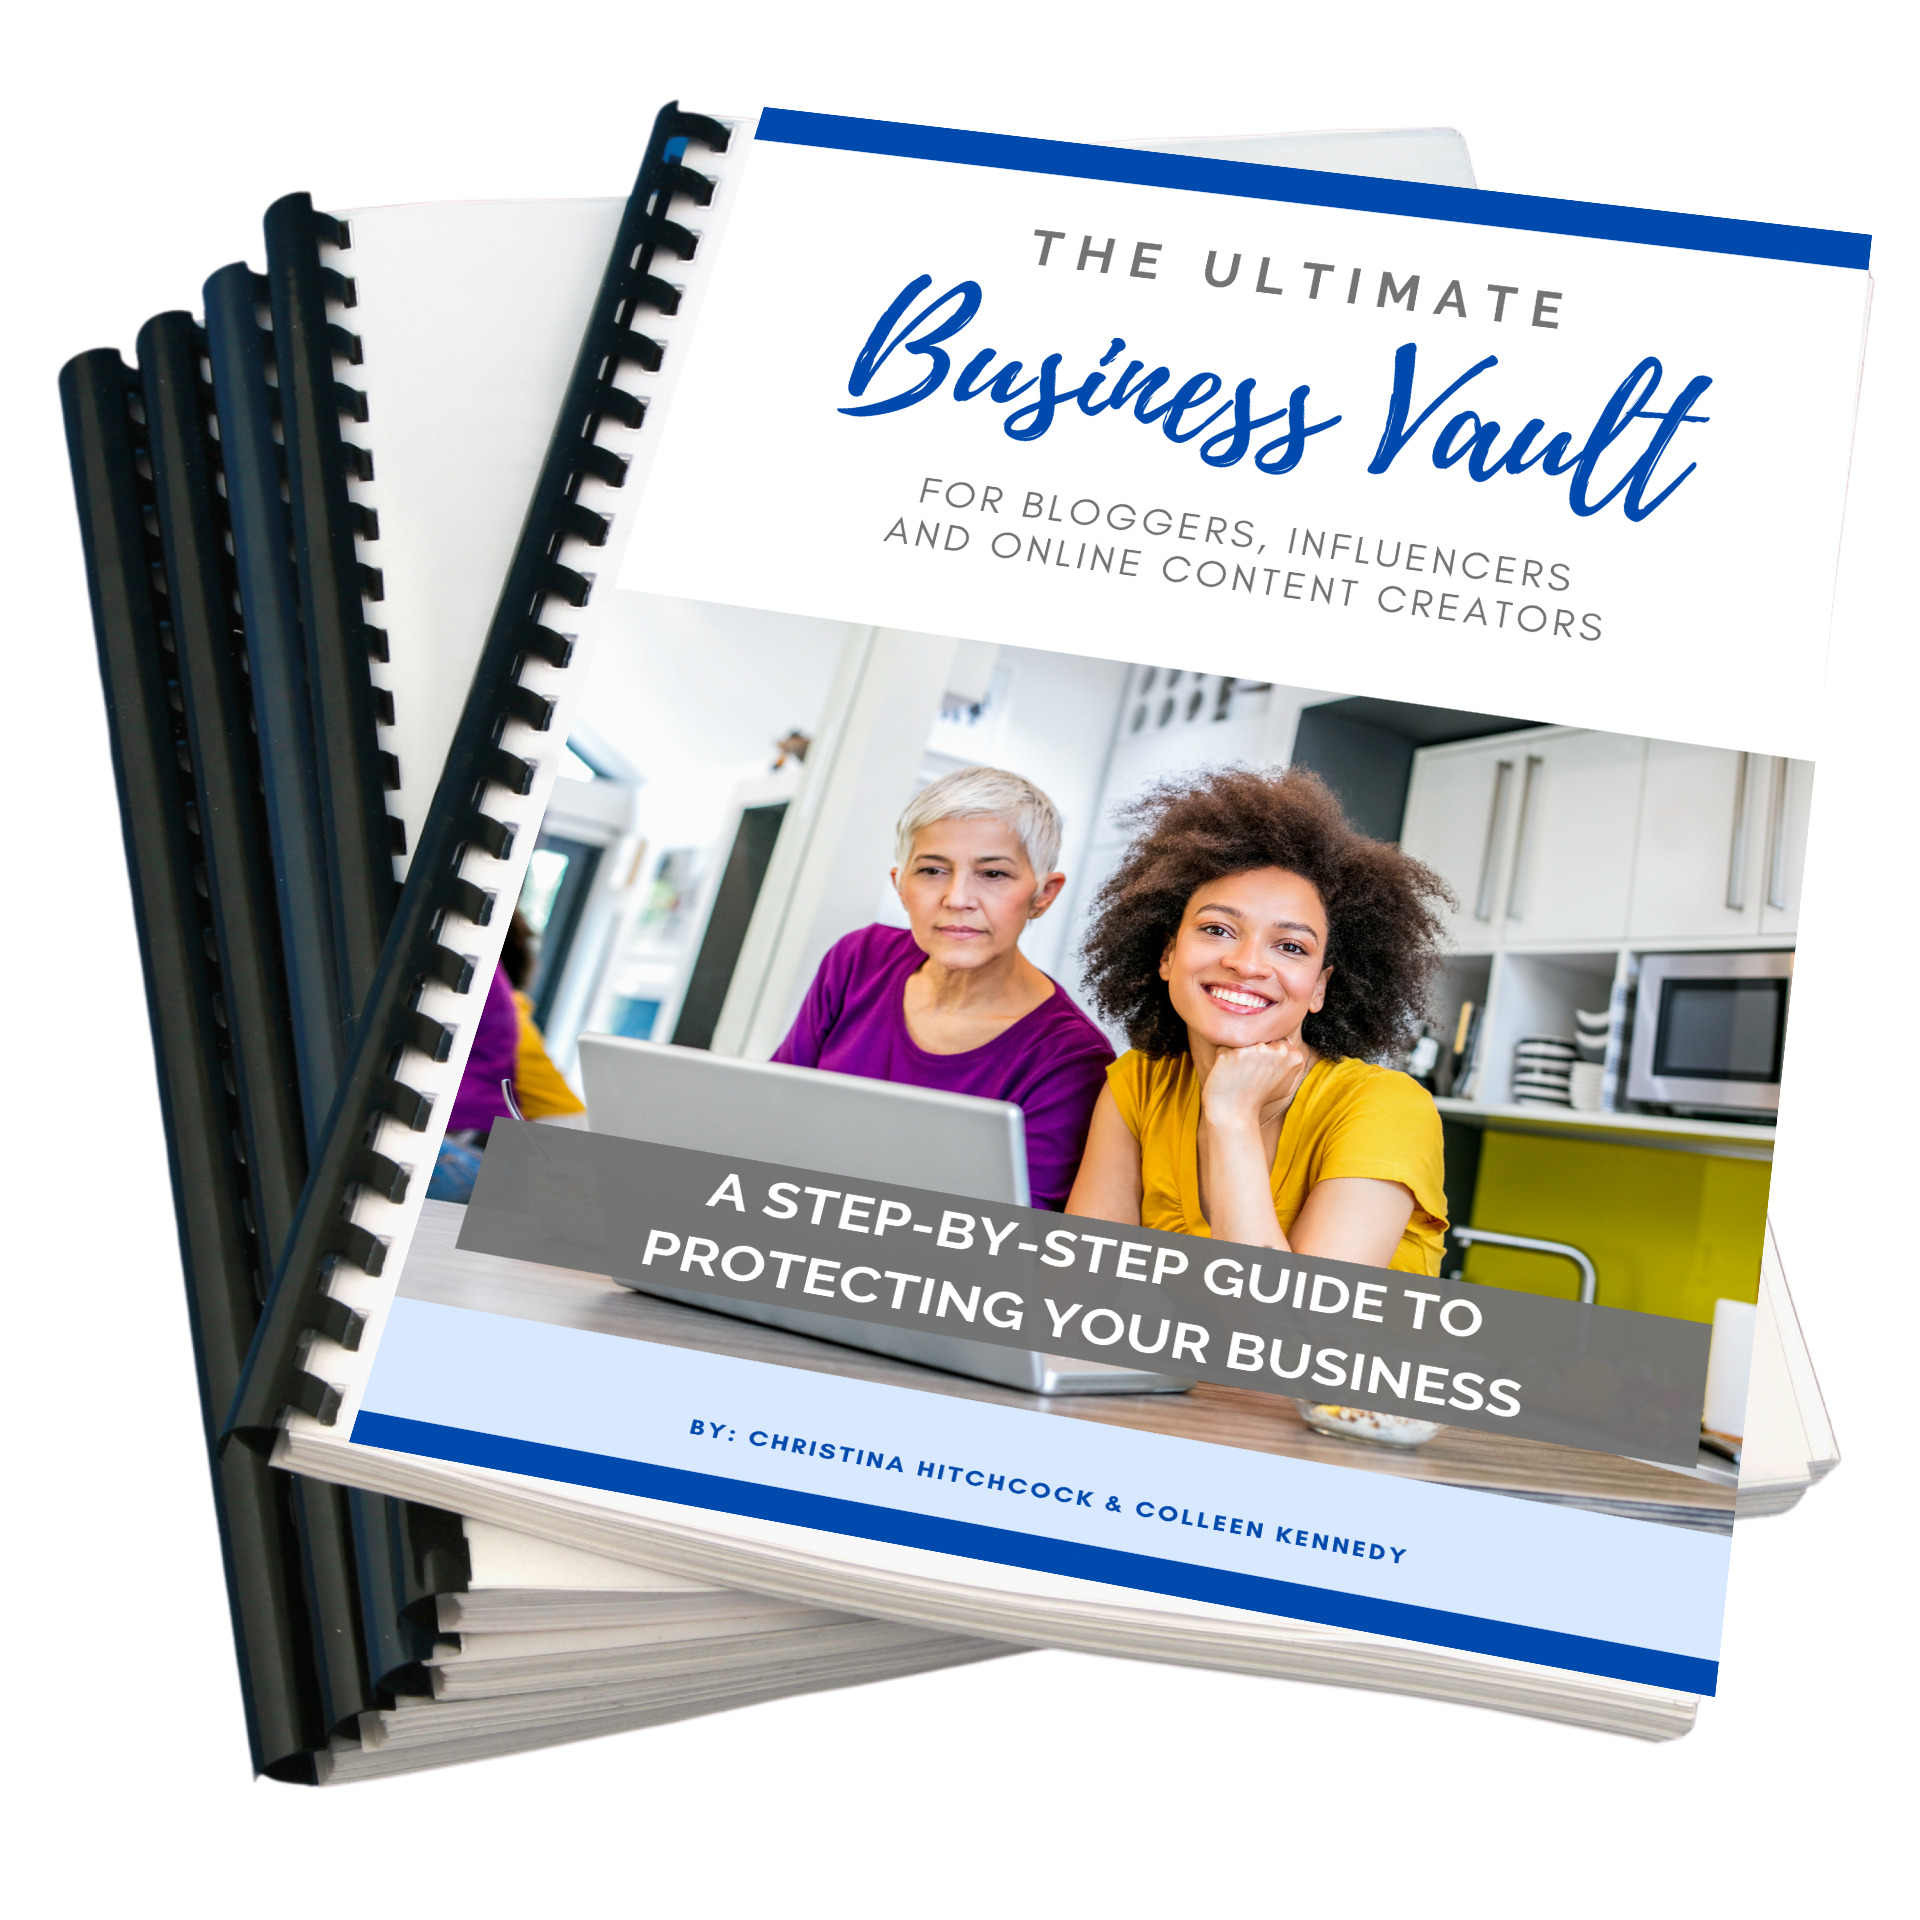 Stack of Ultimate Business Vault workbooks